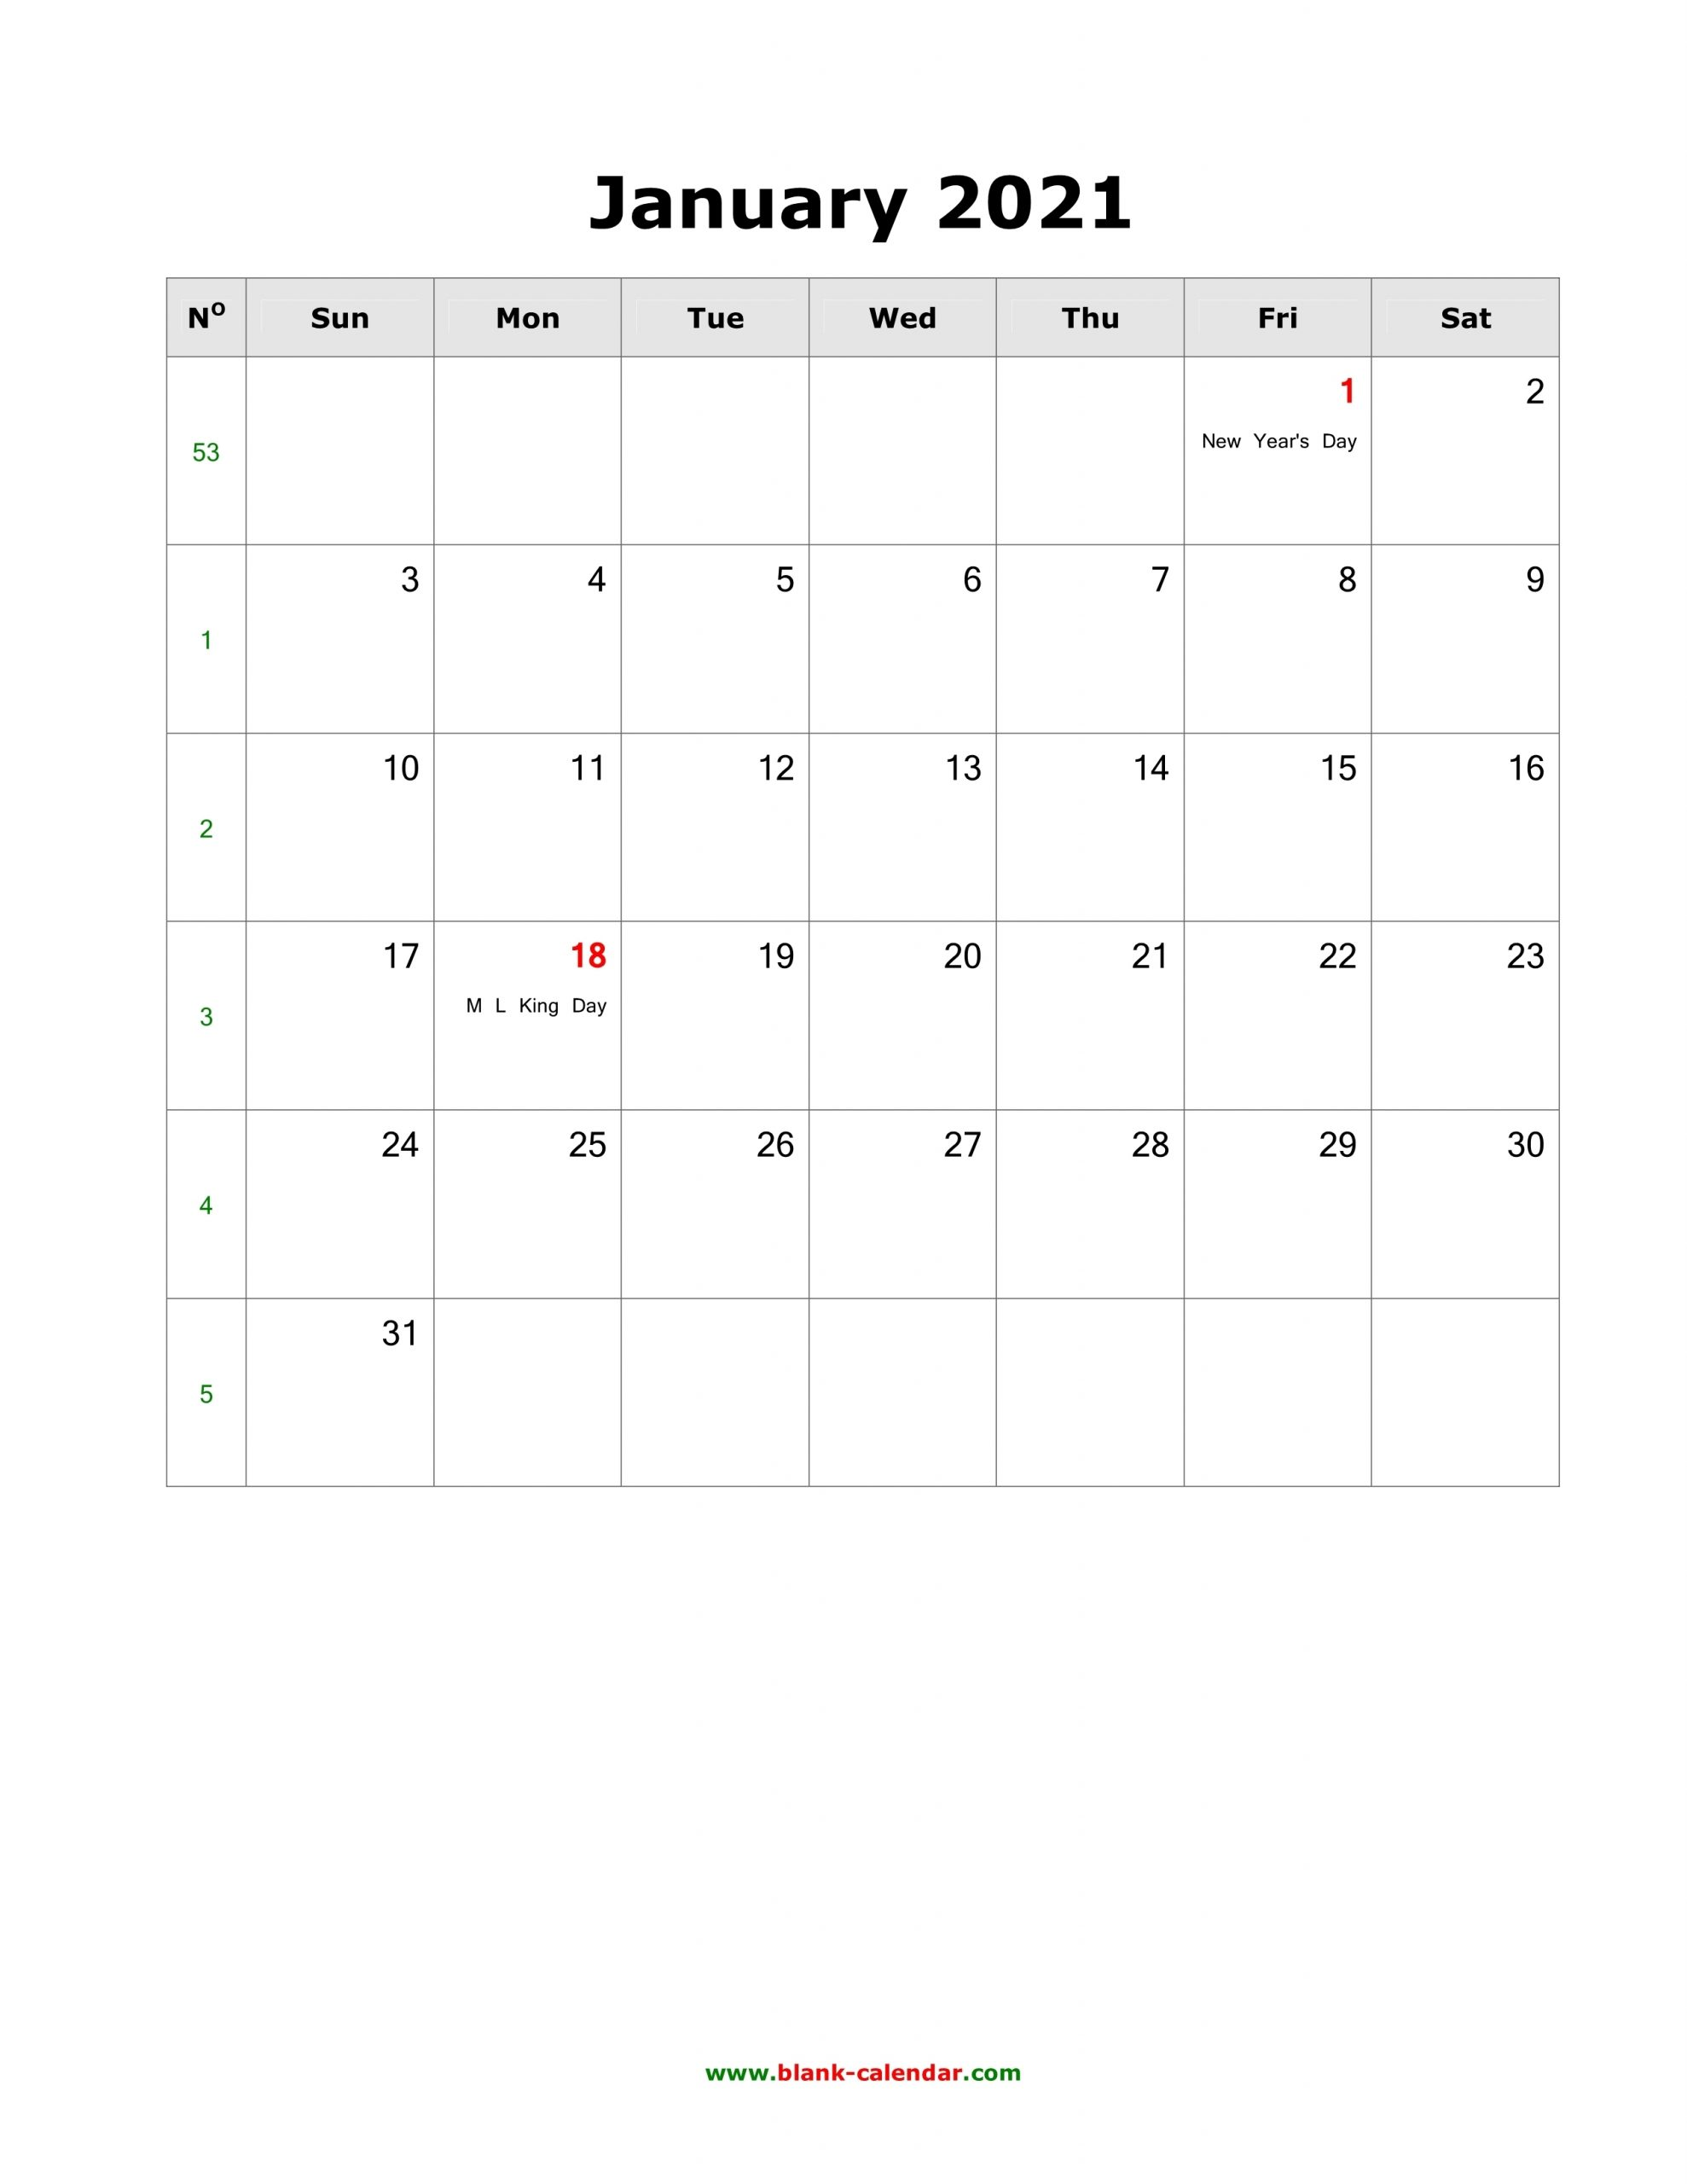 Download January 2021 Blank Calendar With Us Holidays